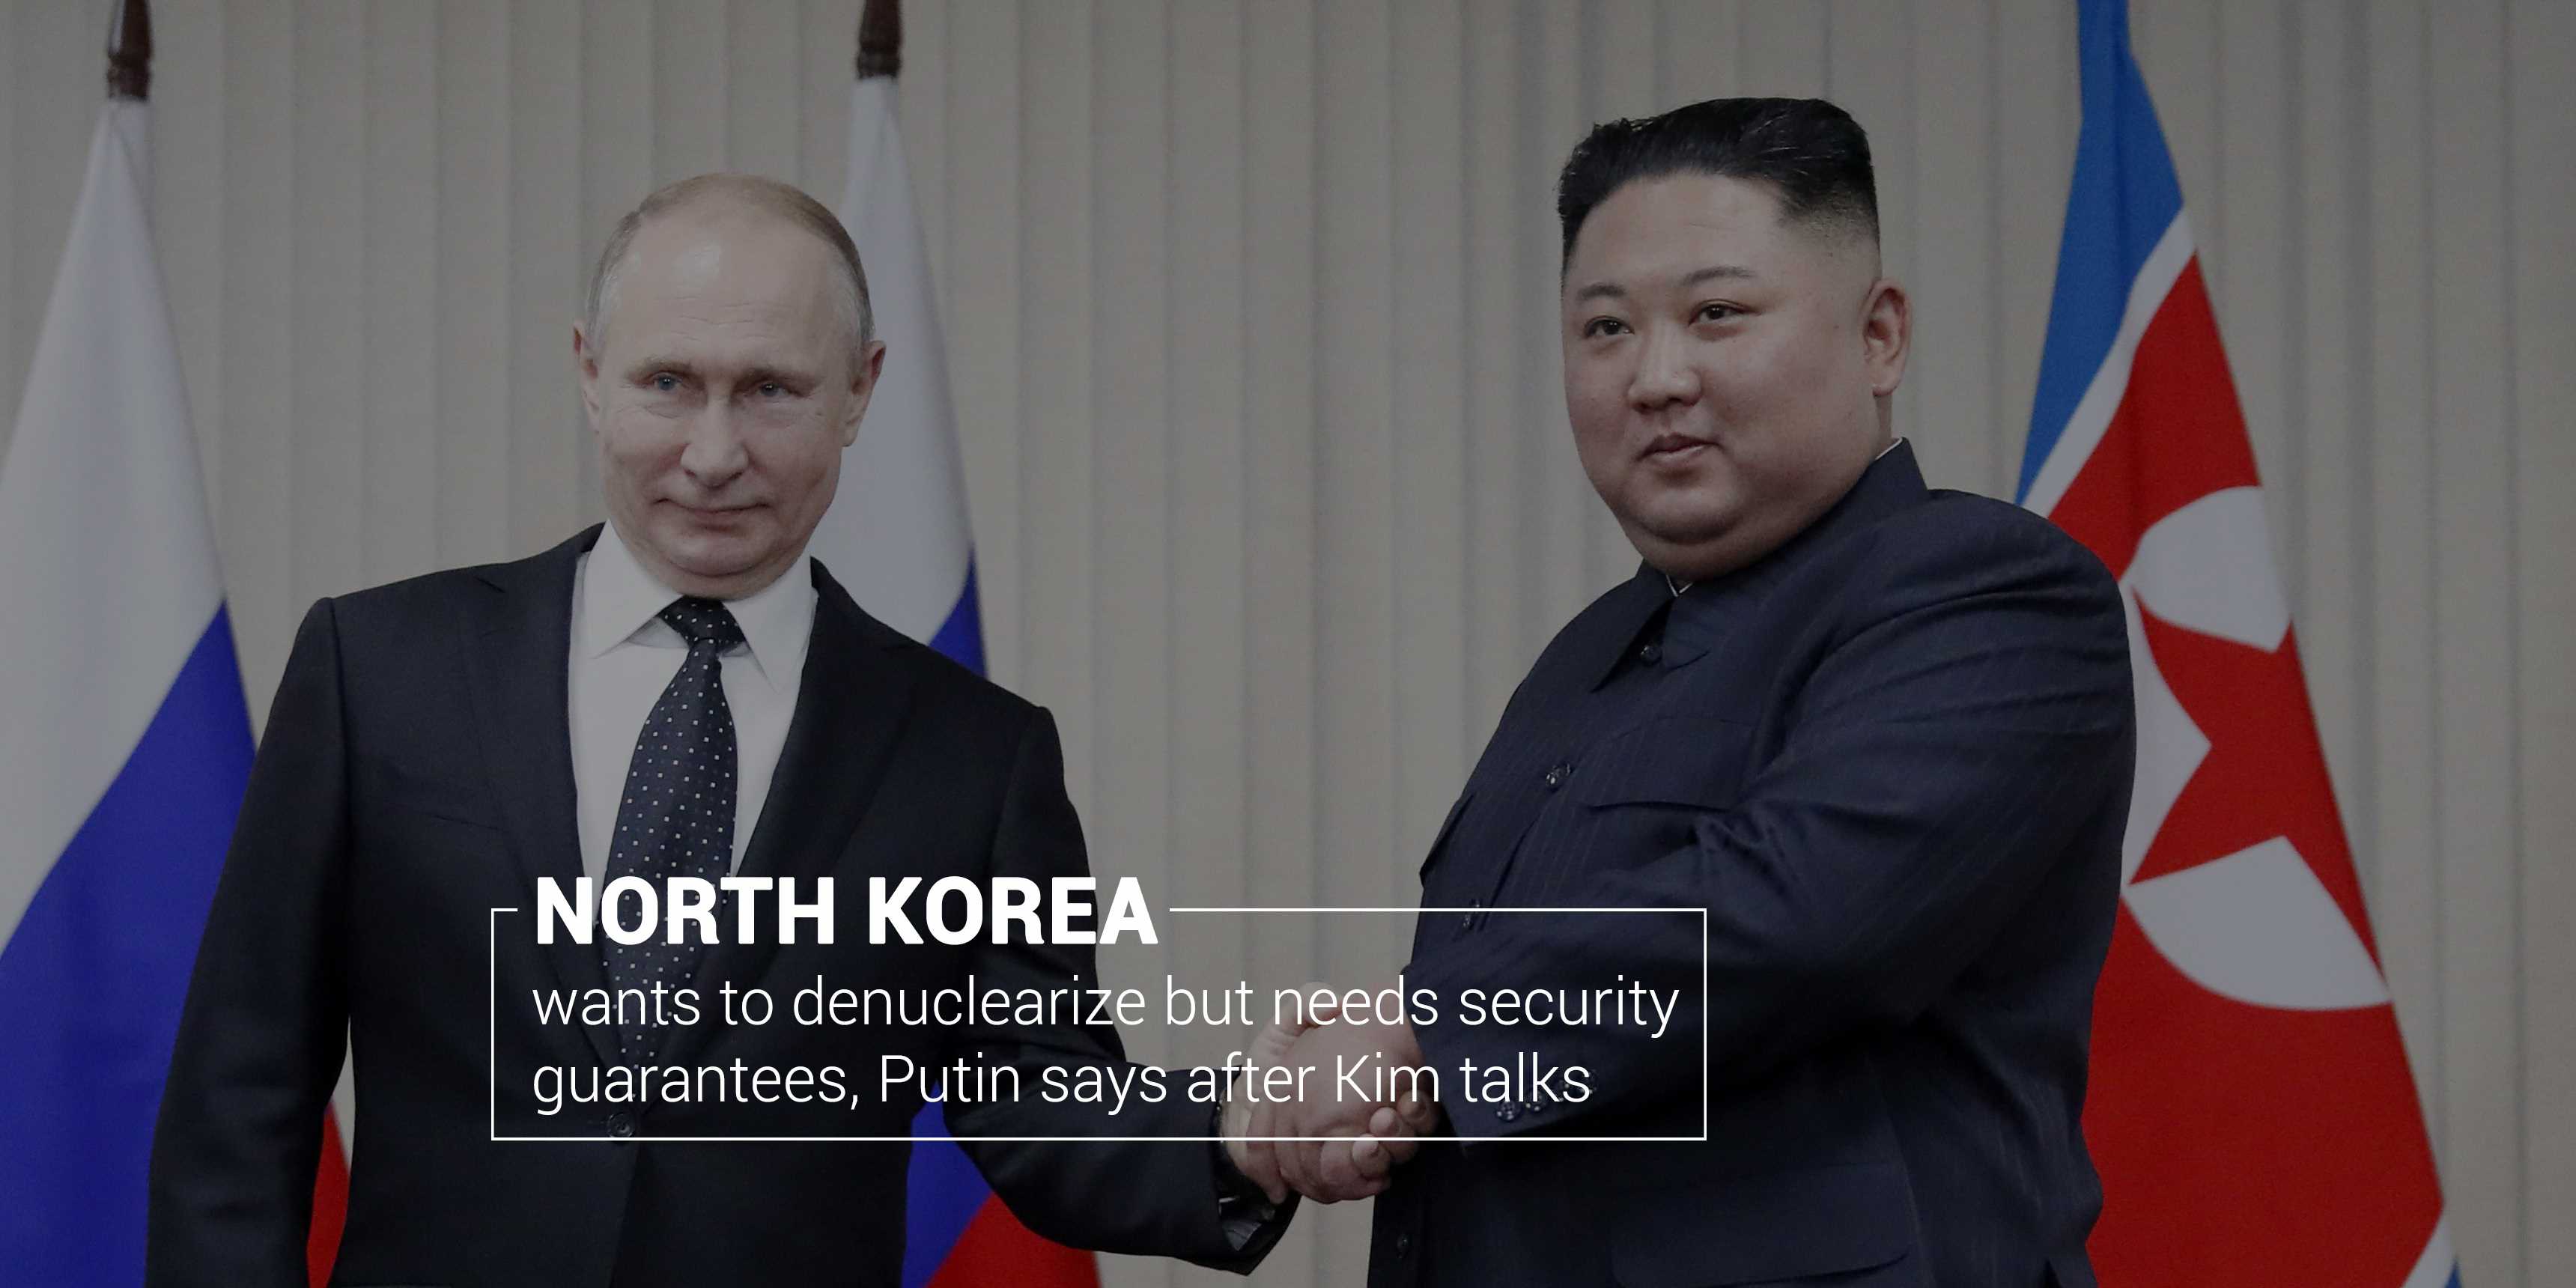 Its a wish of North Korea to denuclearize - needs Security Guarantee